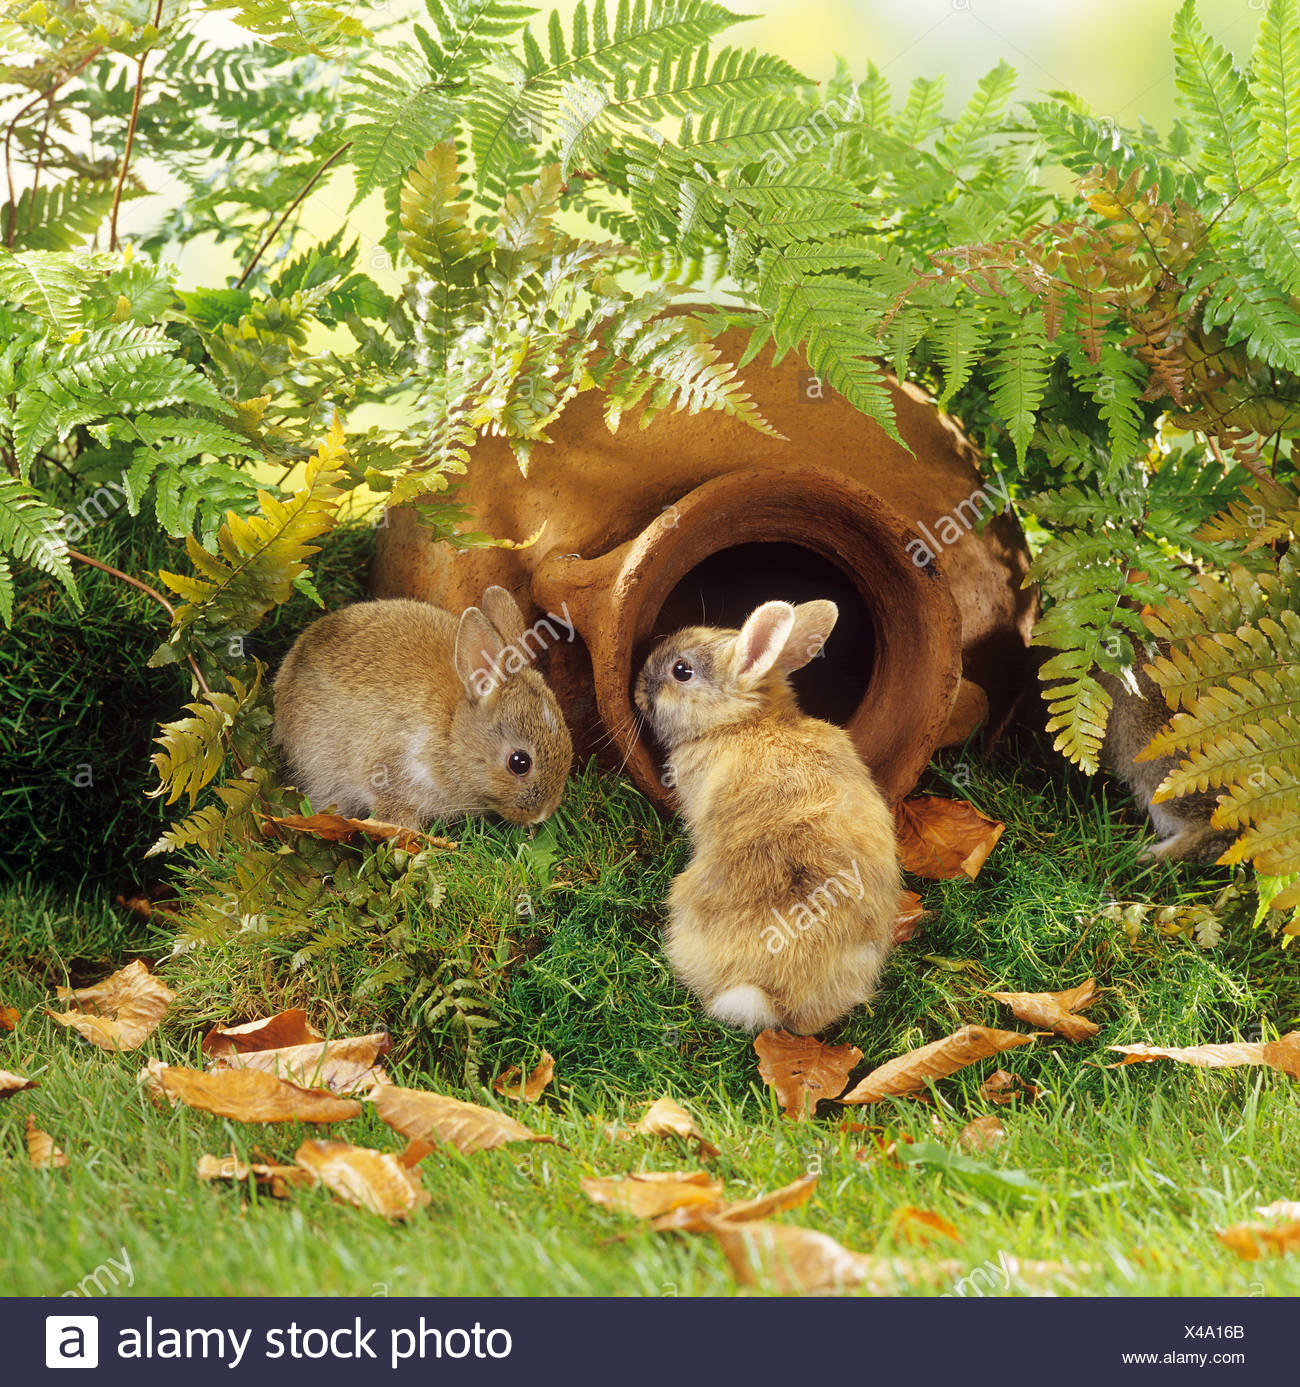 two young pygmy rabbits - in garden with amphora - Stock Image